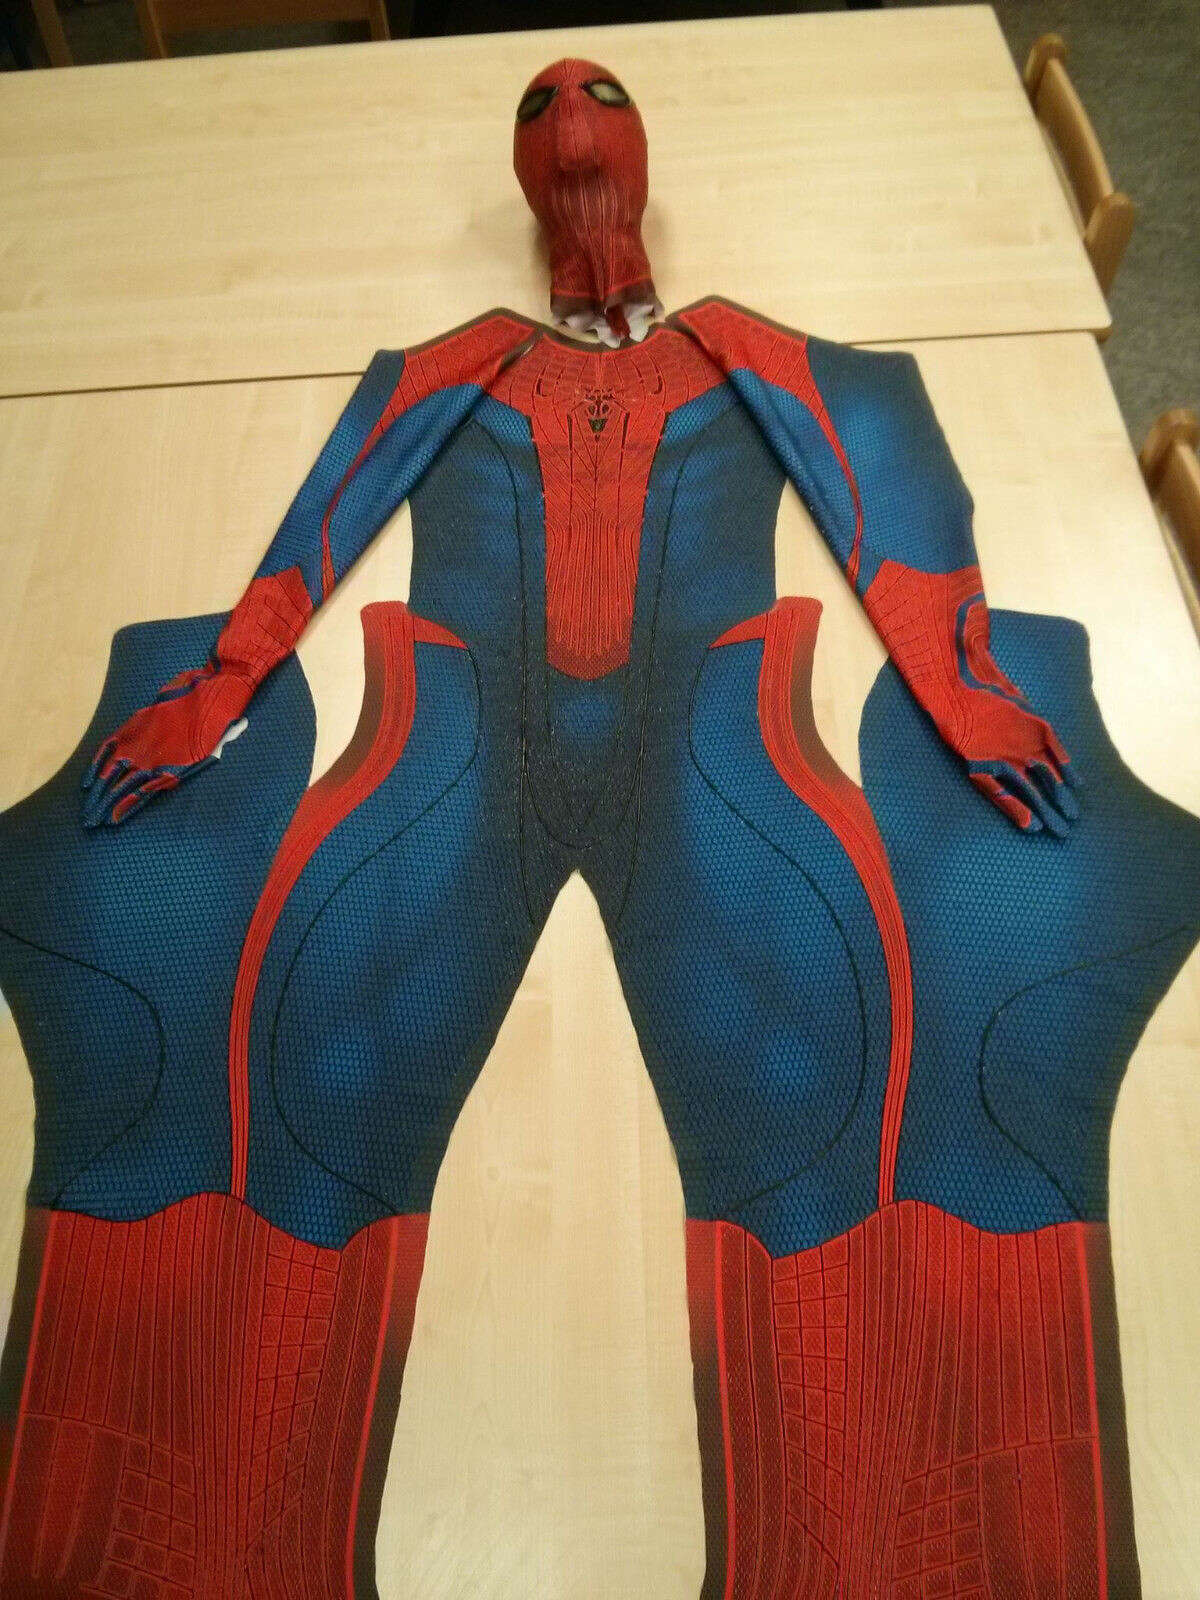 This Spider-Man costume sold for $2,500. It's a replica of the costume worn in